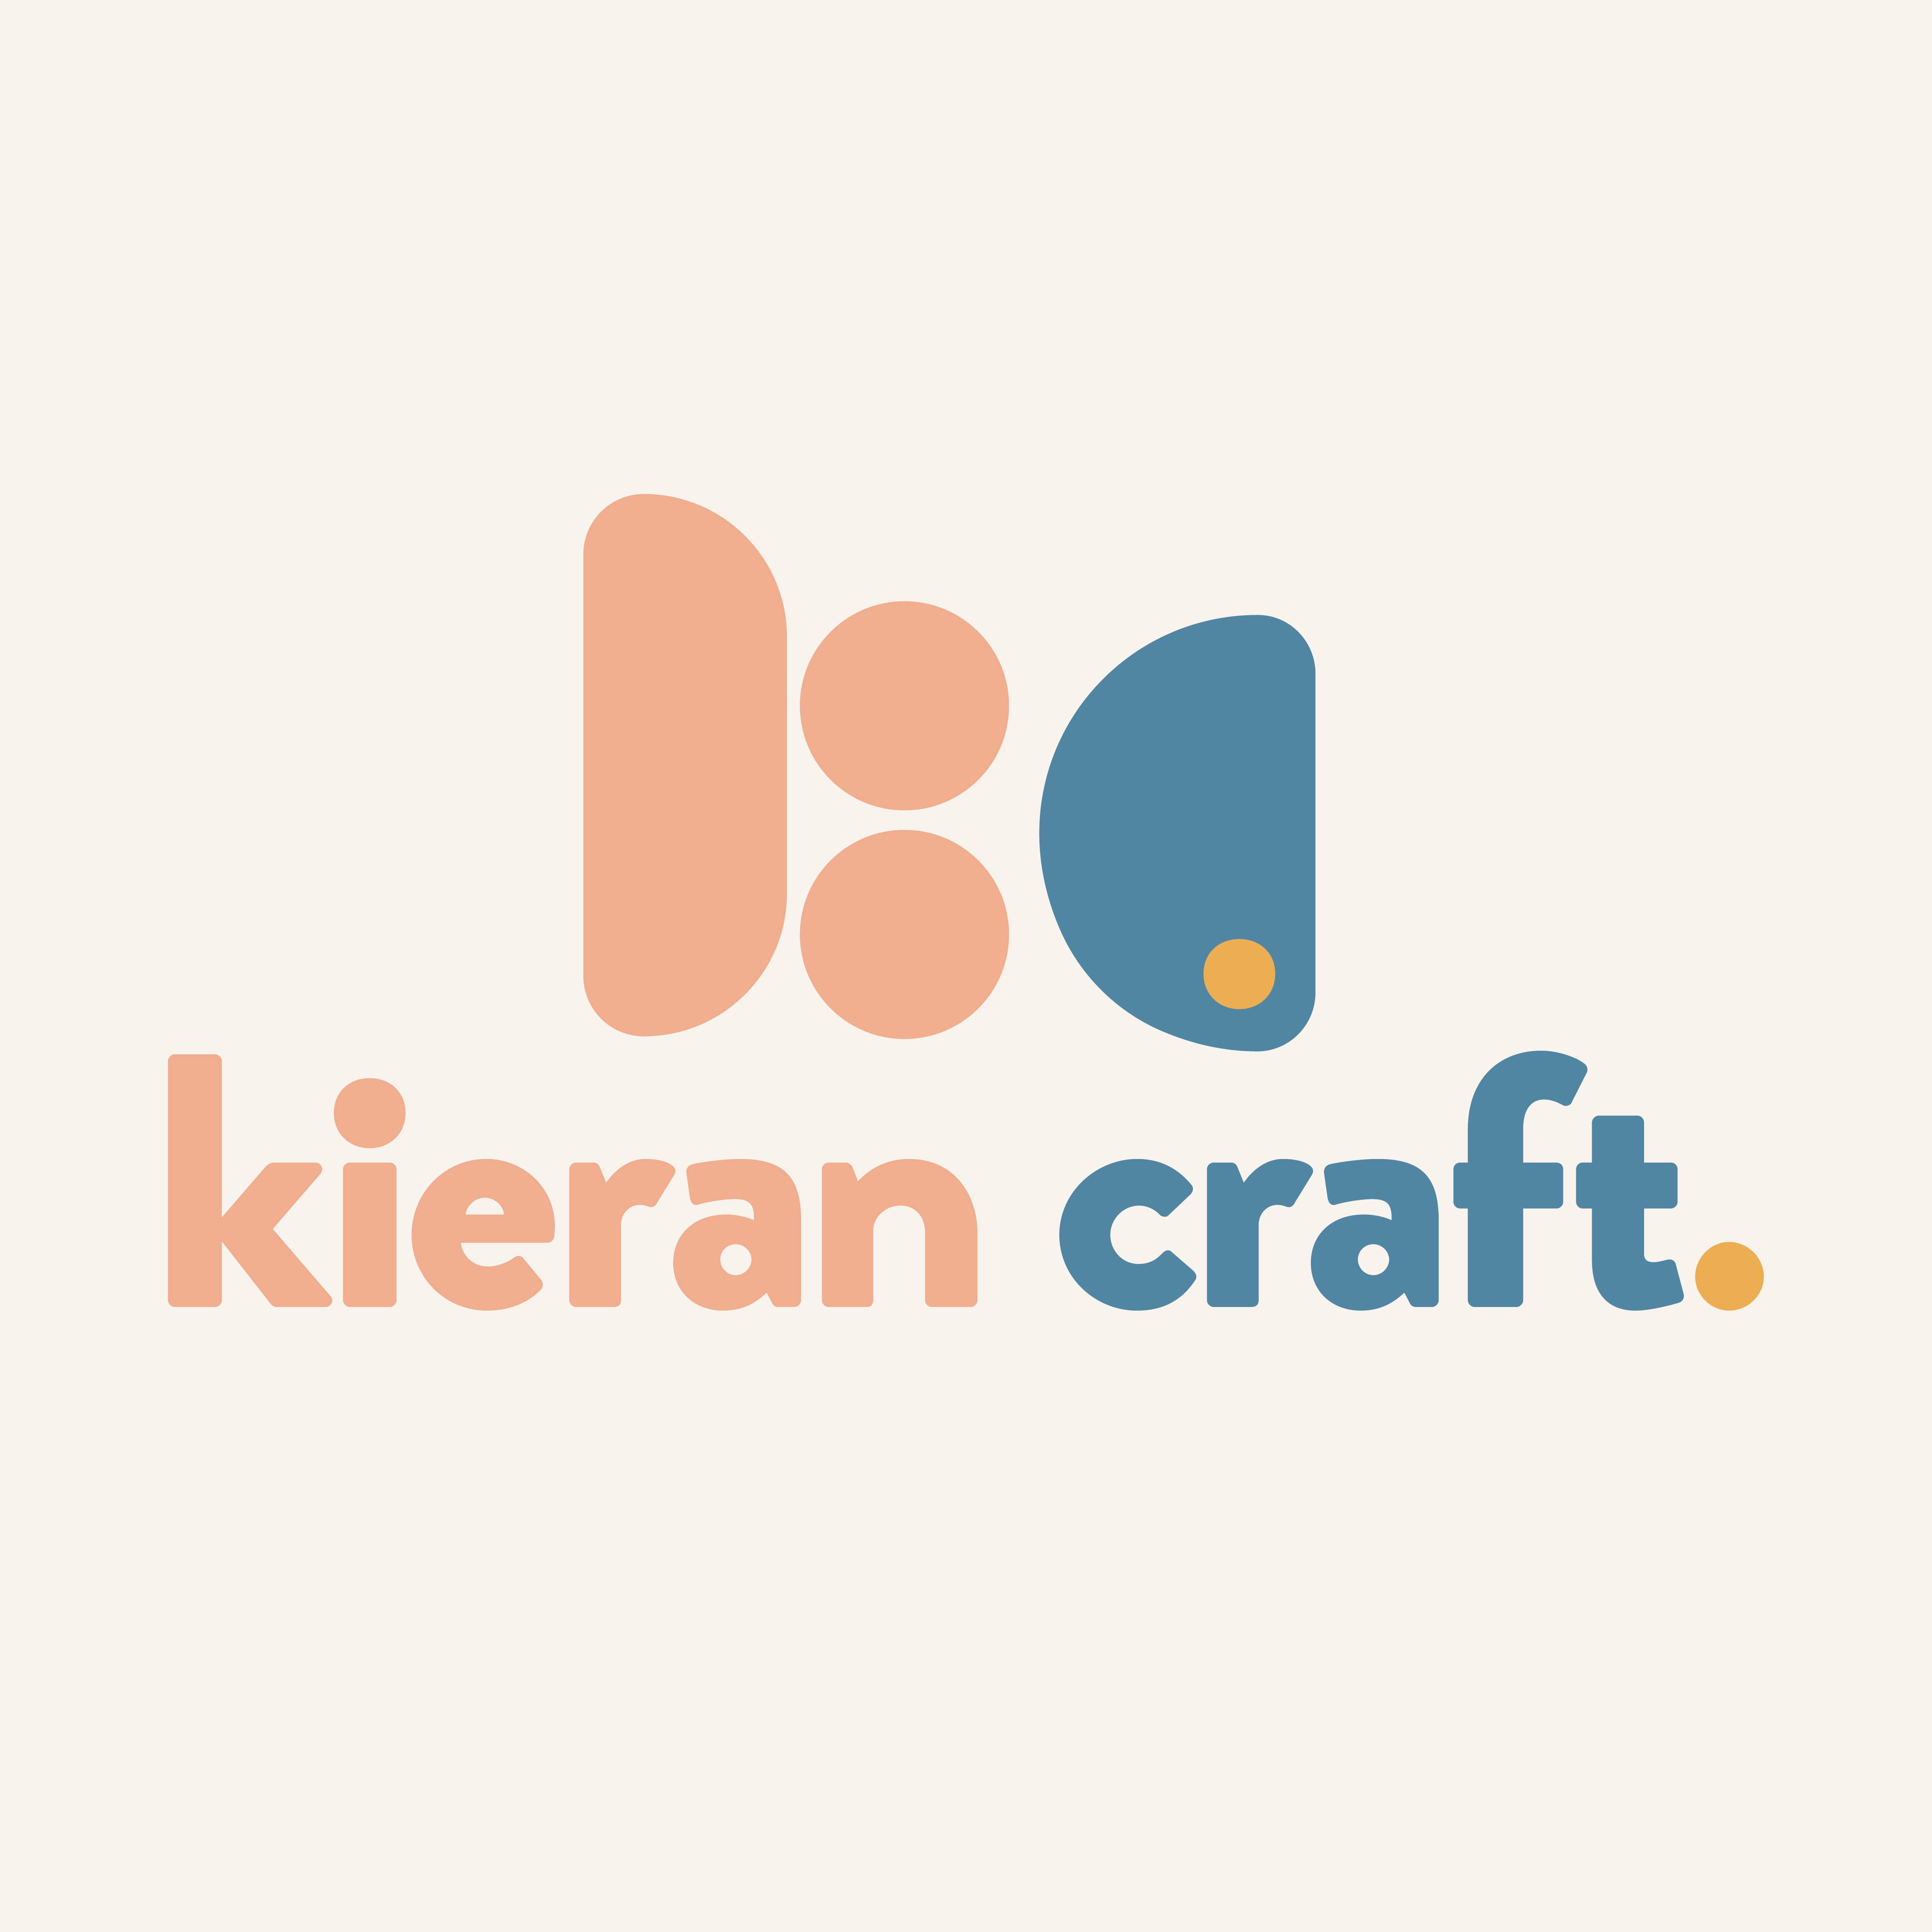 """Instagram post from @kierankcraft that features Kieran Craft's logo on an off-white background. The salmon, blue, and mustard-colored logo includes the name Kieran Craft and a logomark that uses rounded shapes to represent an abstract """"KC."""""""